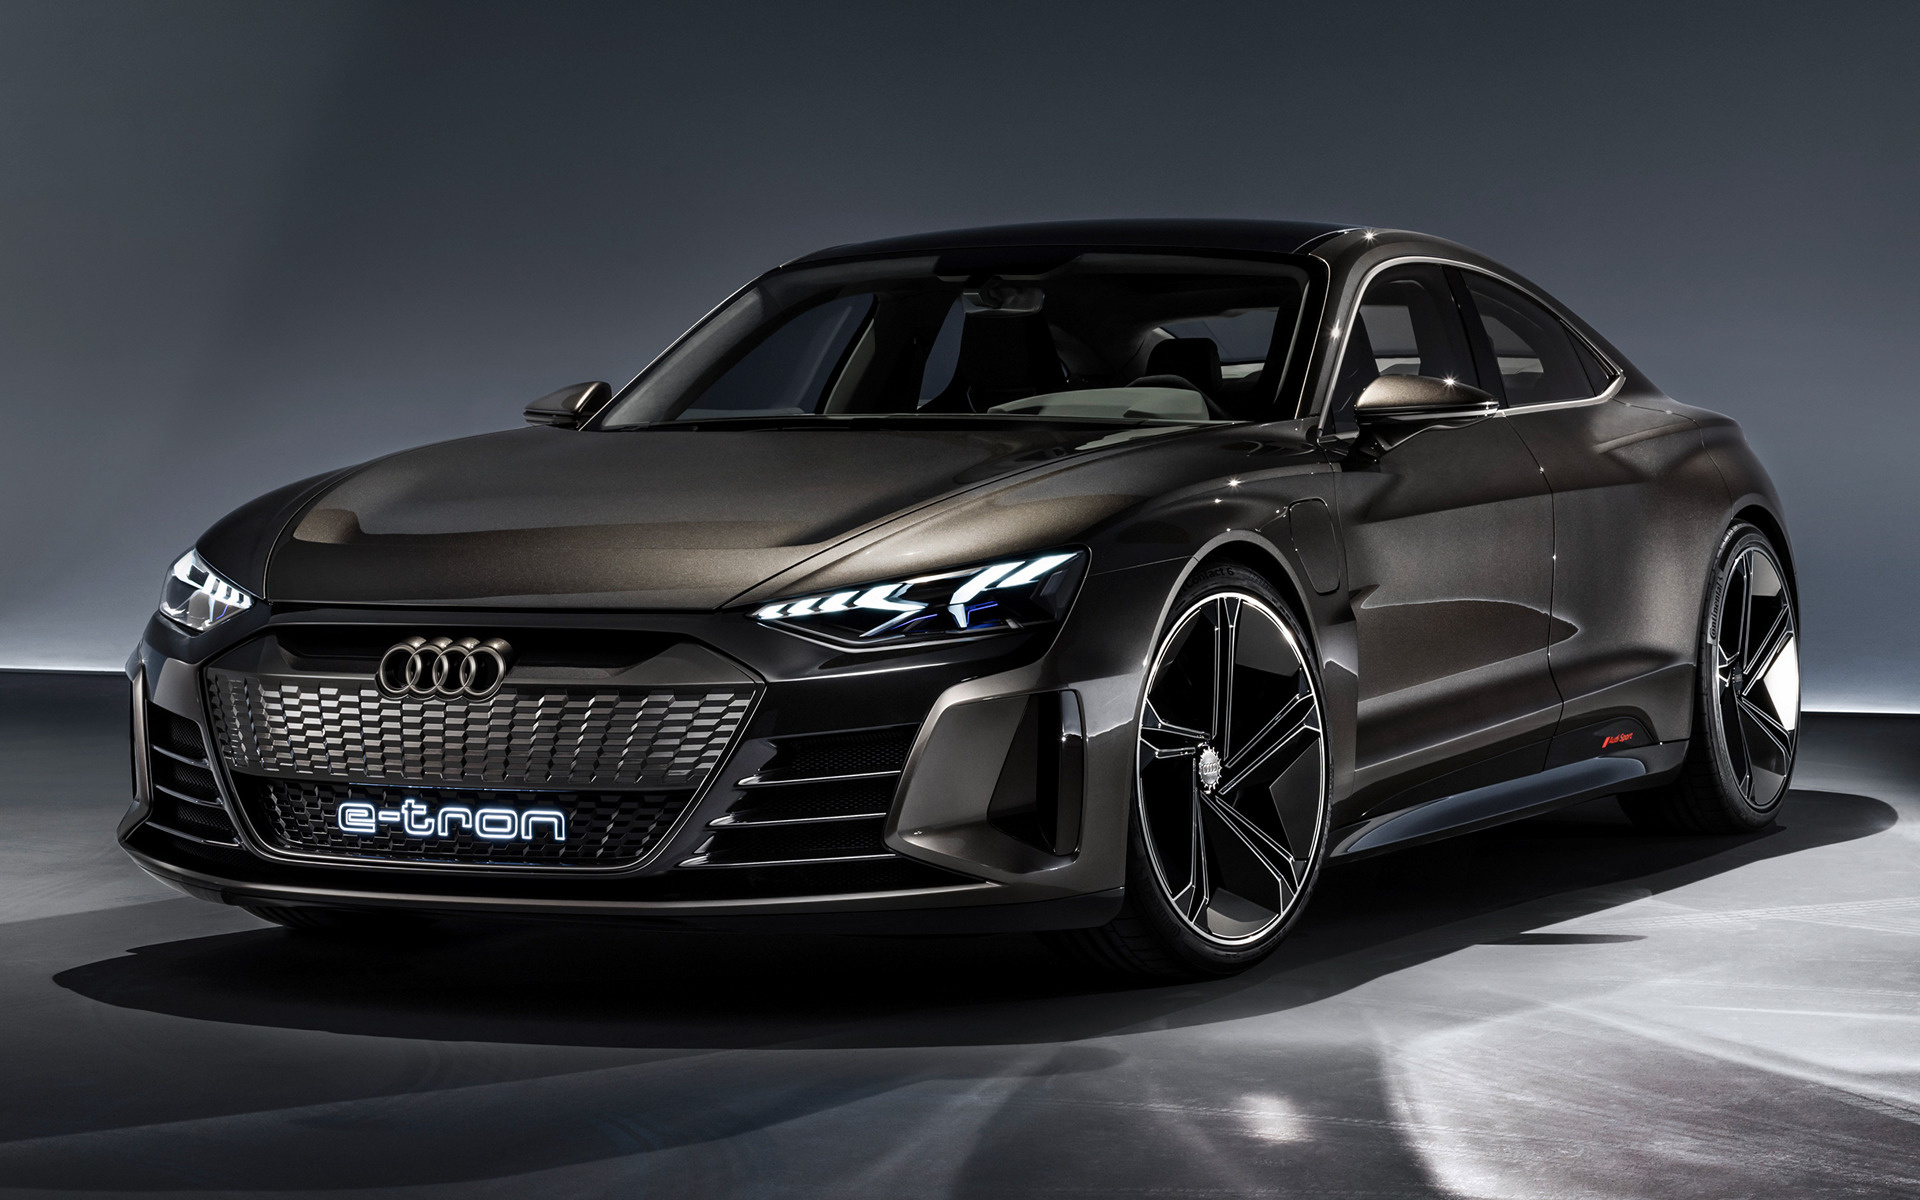 2018 Audi E-Tron GT concept - Wallpapers and HD Images ...